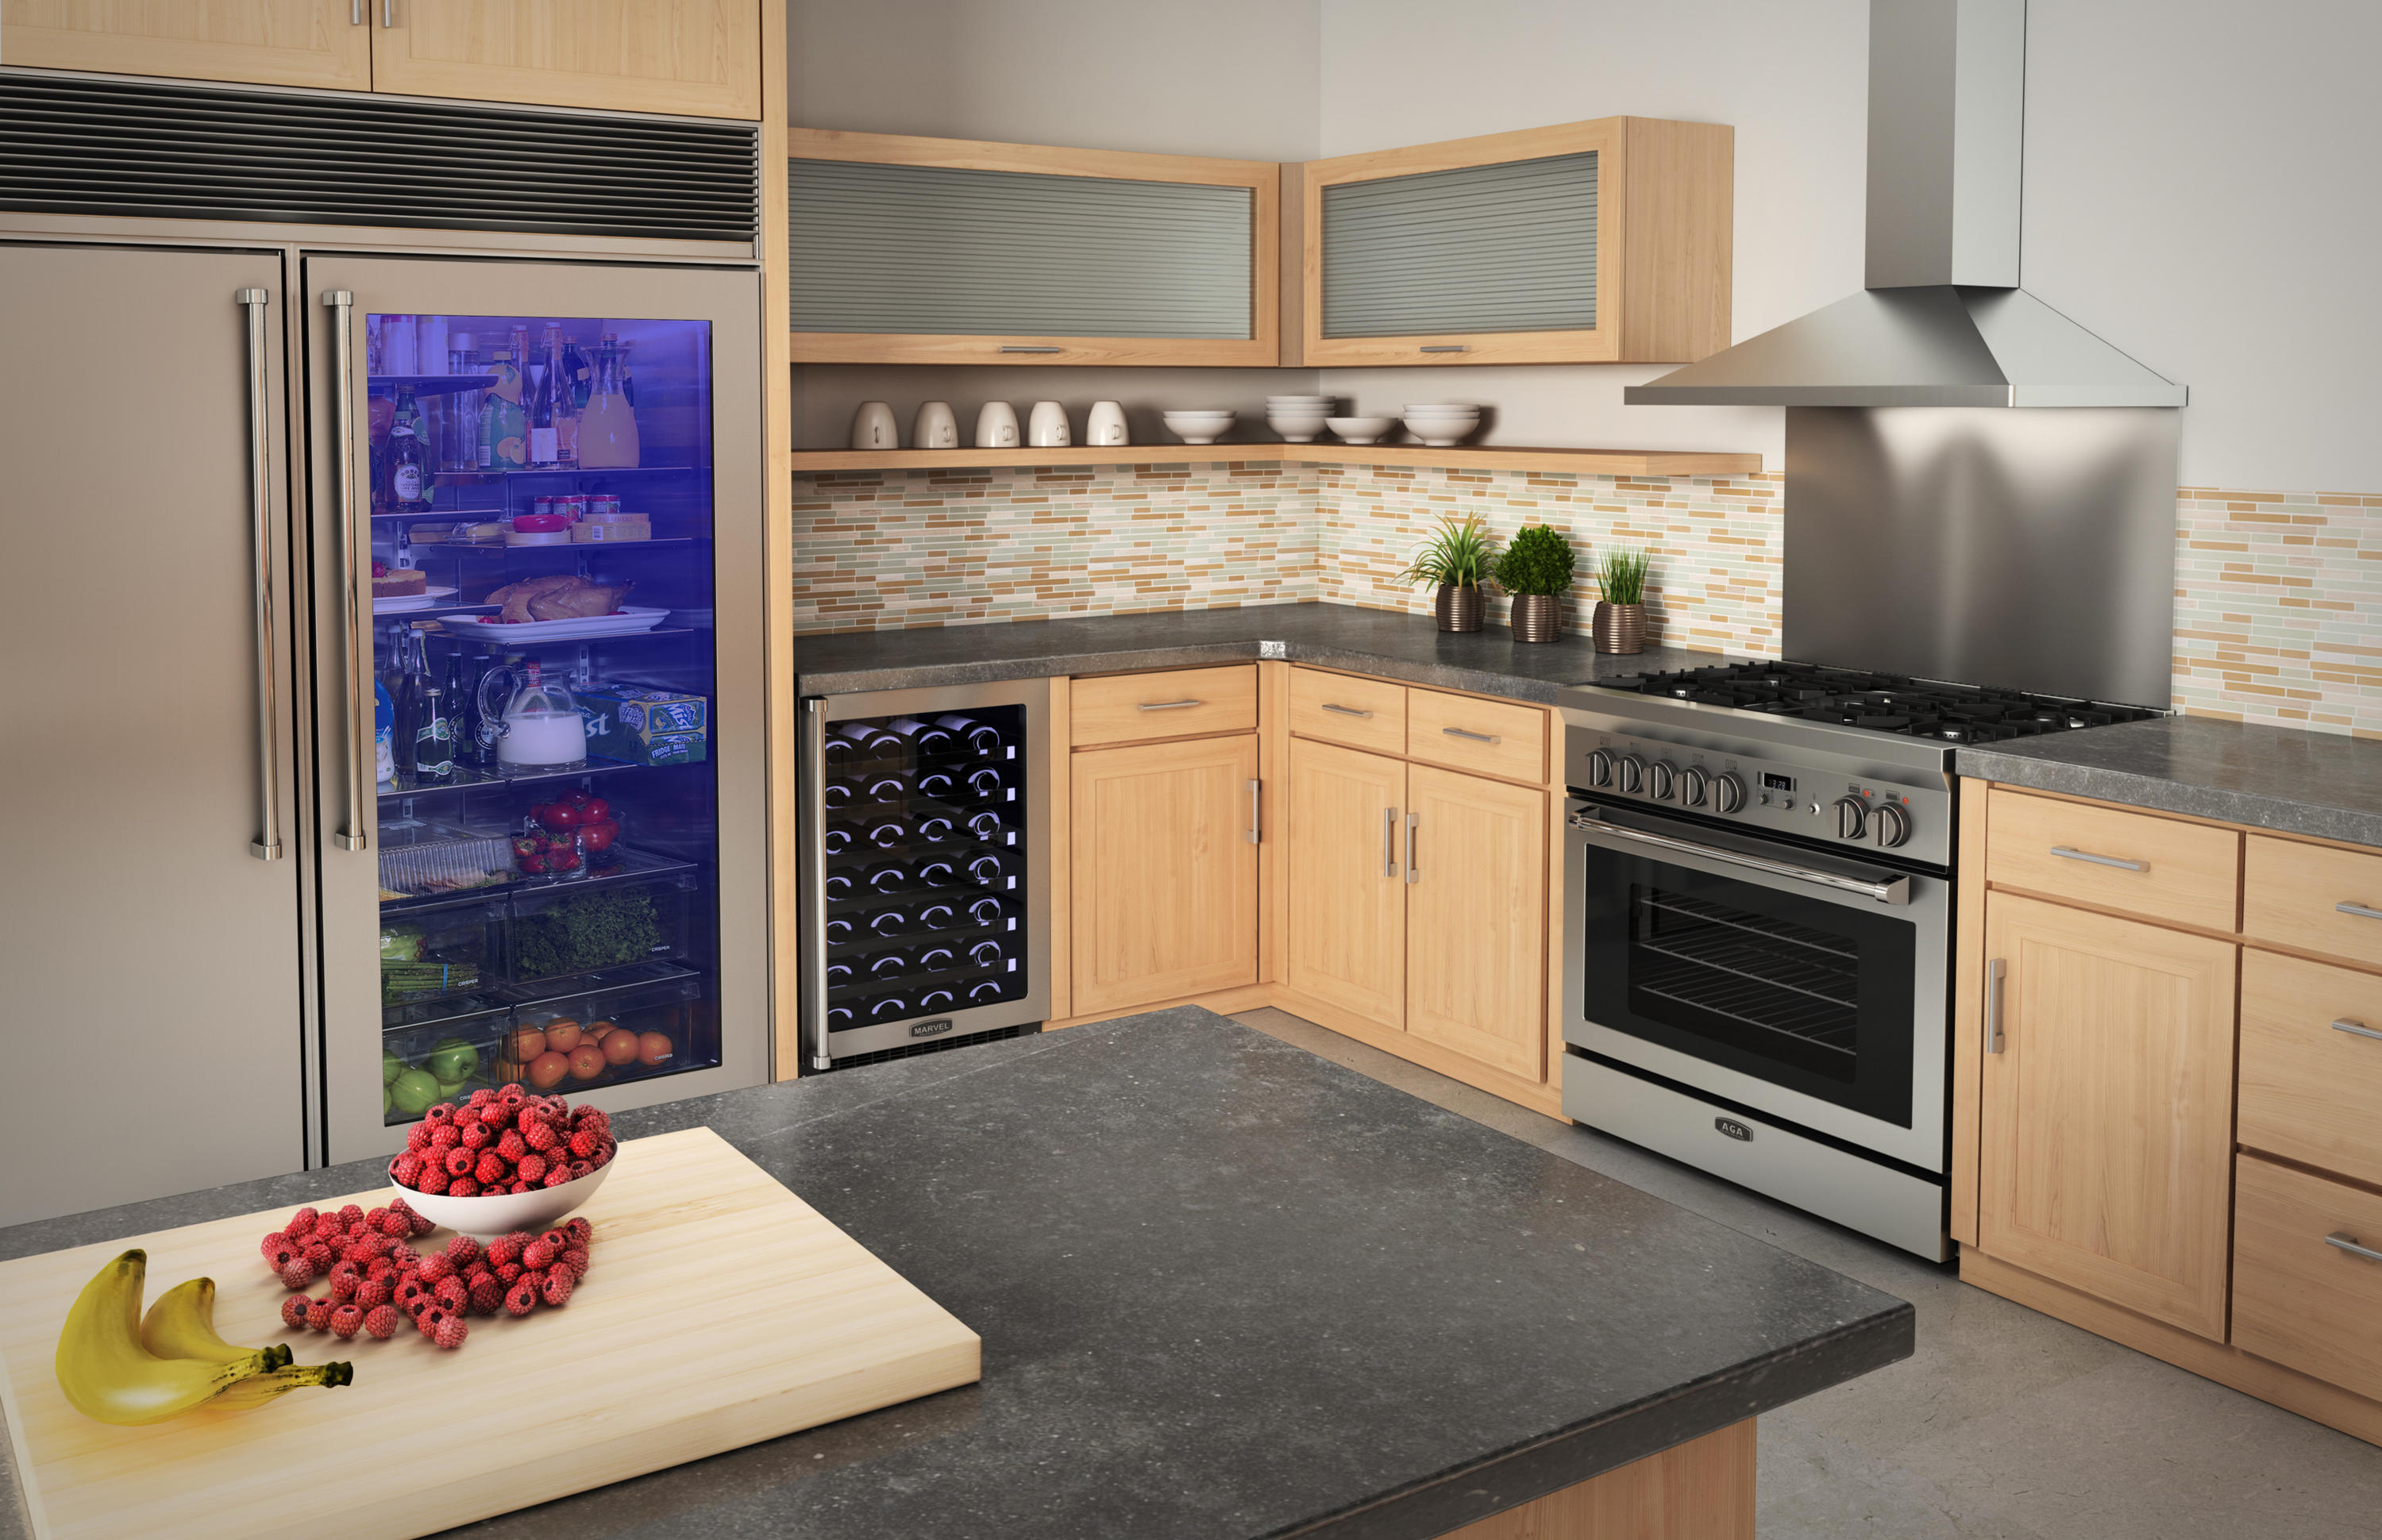 Uncategorized Universal Appliance And Kitchen Center universal appliance kitchen center wolf appliances youtube and in calabasas ca whitepages